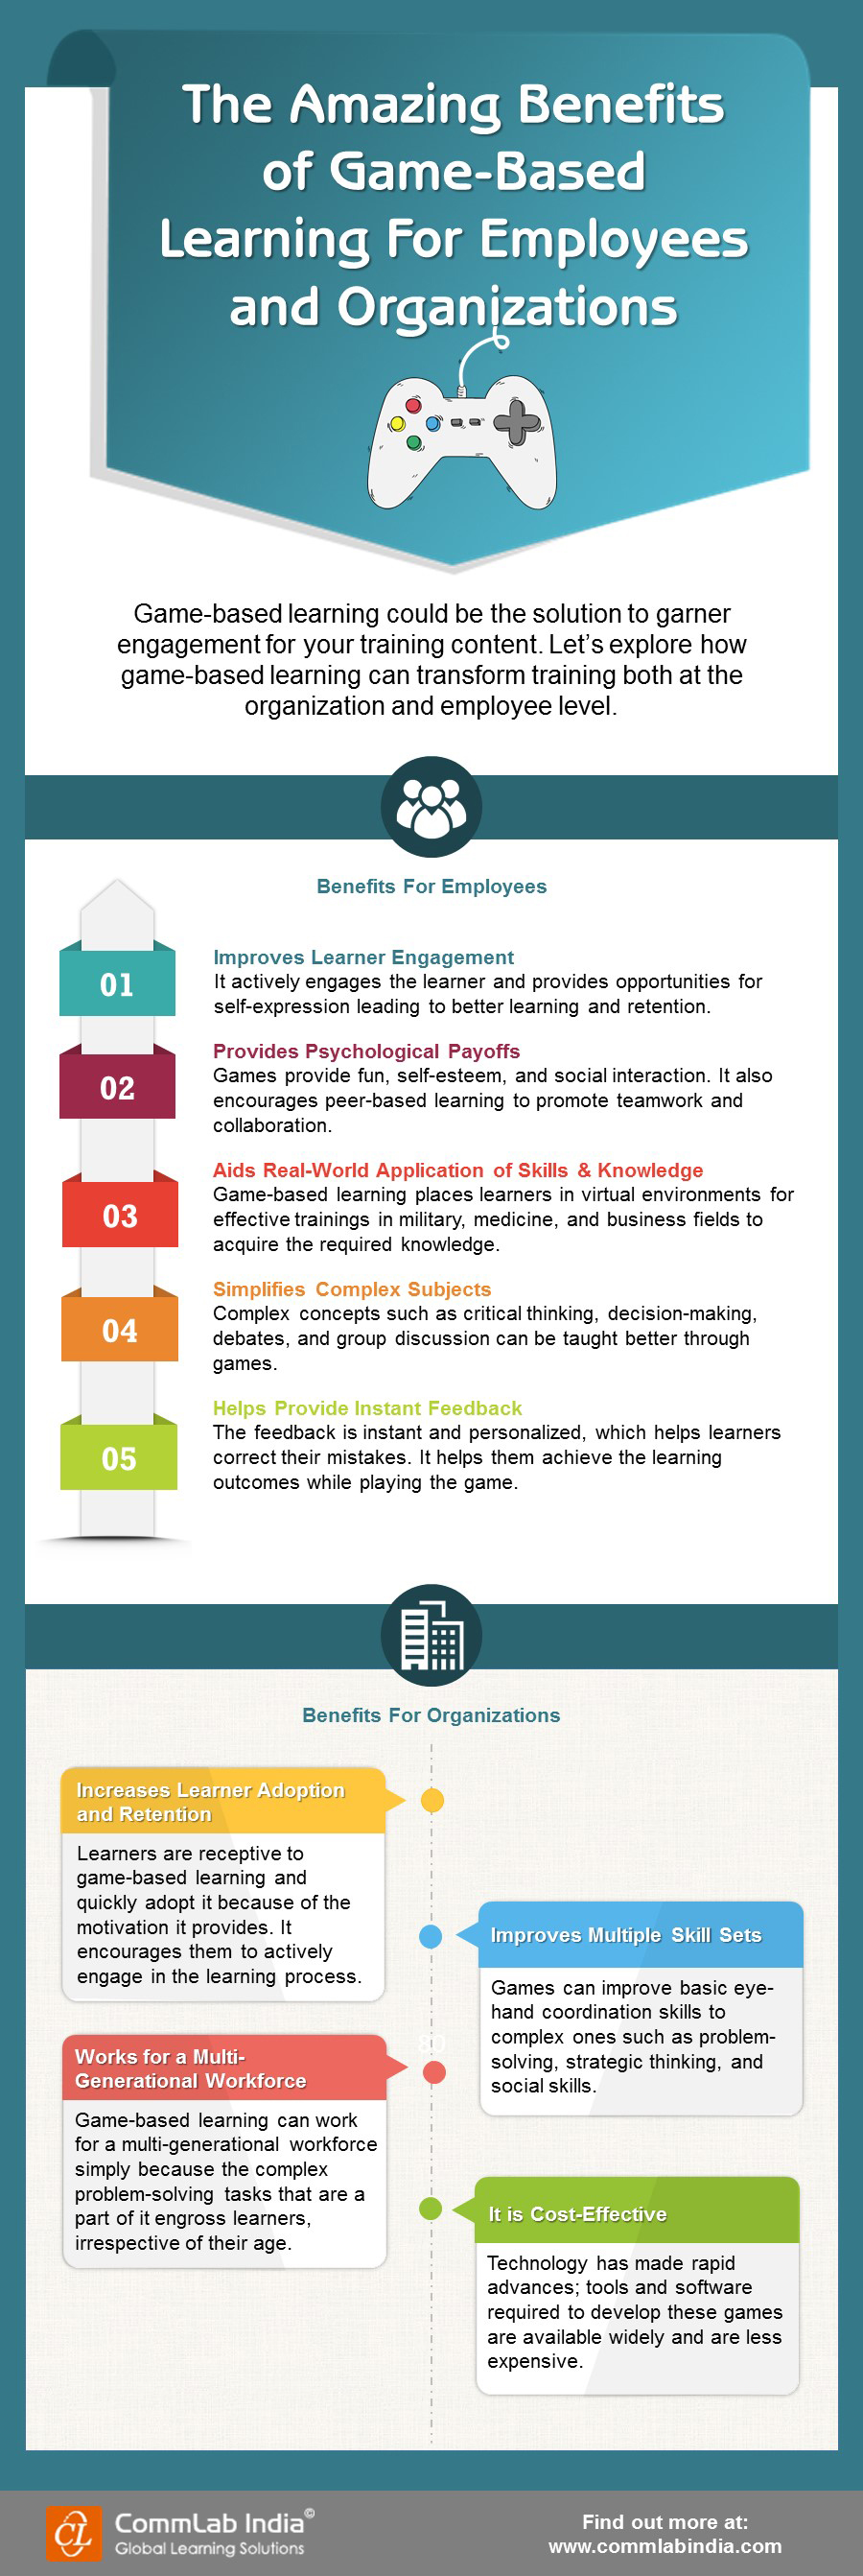 The Amazing Benefits of Game-Based Learning For Employees and Organizations [Infographic]